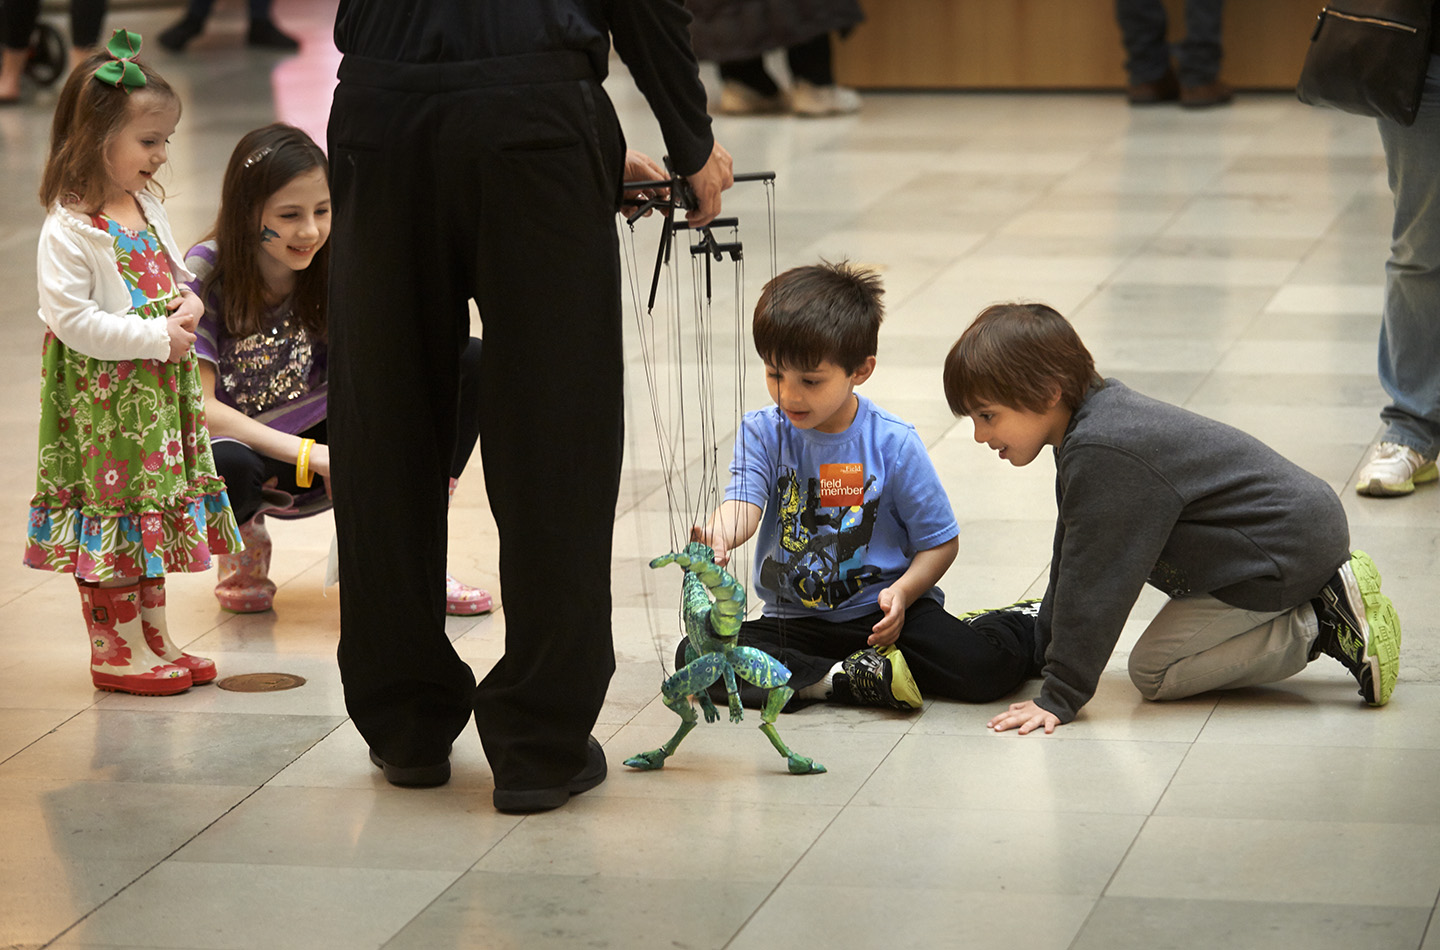 Young children gather around a puppeteer, who animates a dragon marionette.